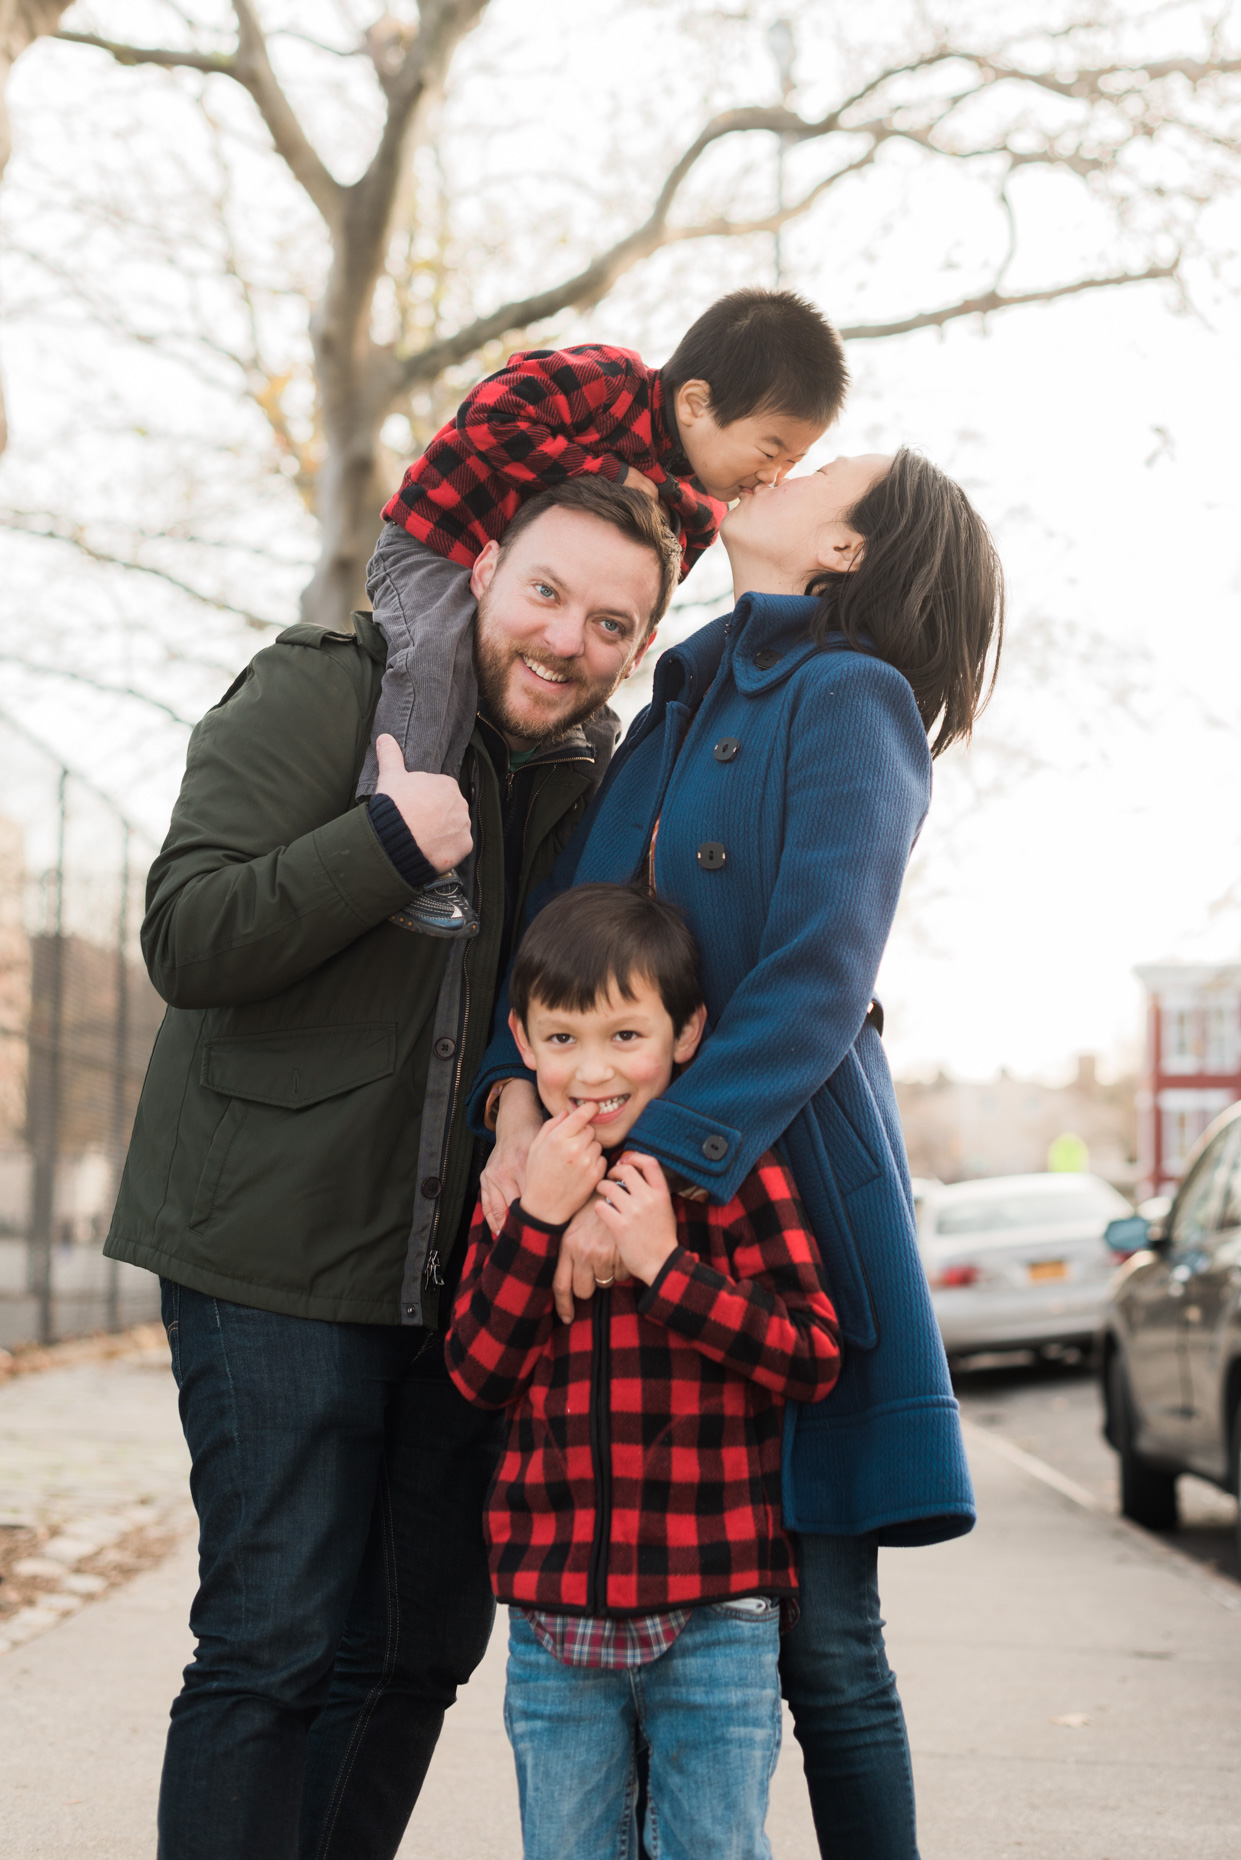 Family Portrait of Iris, Mike and Children in Brooklyn, New York City.